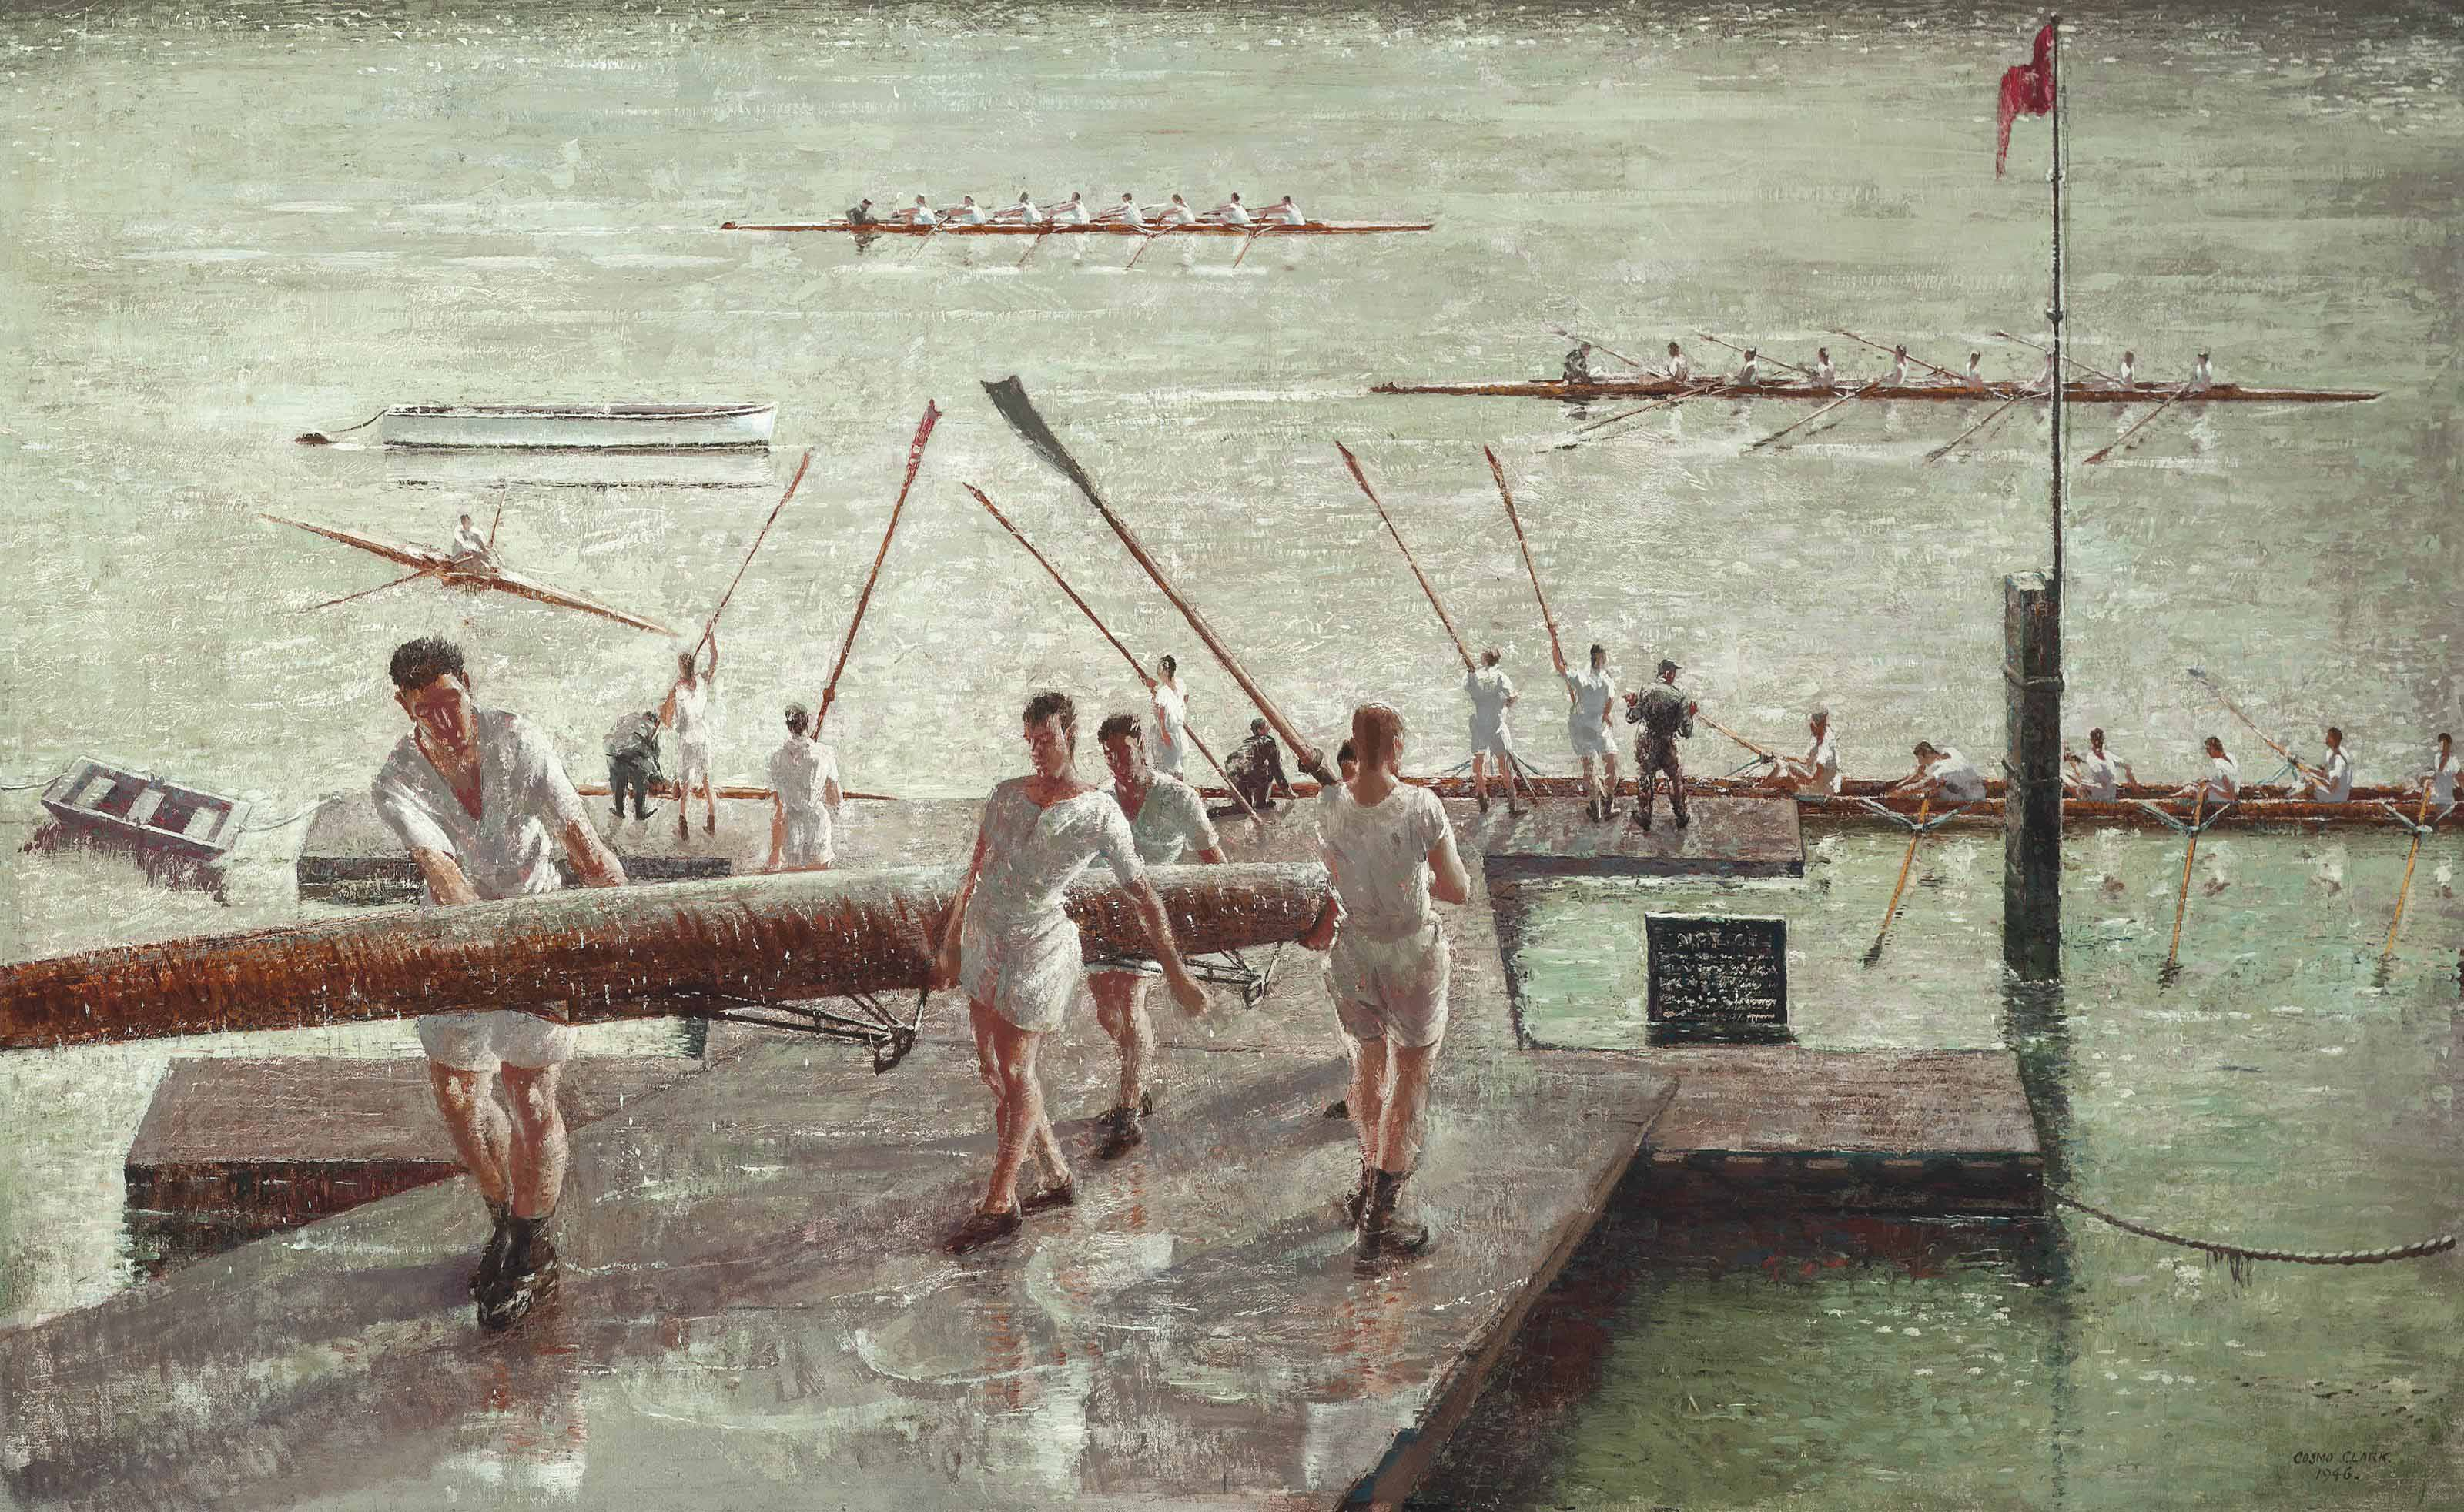 Scullers and Eights at Henley